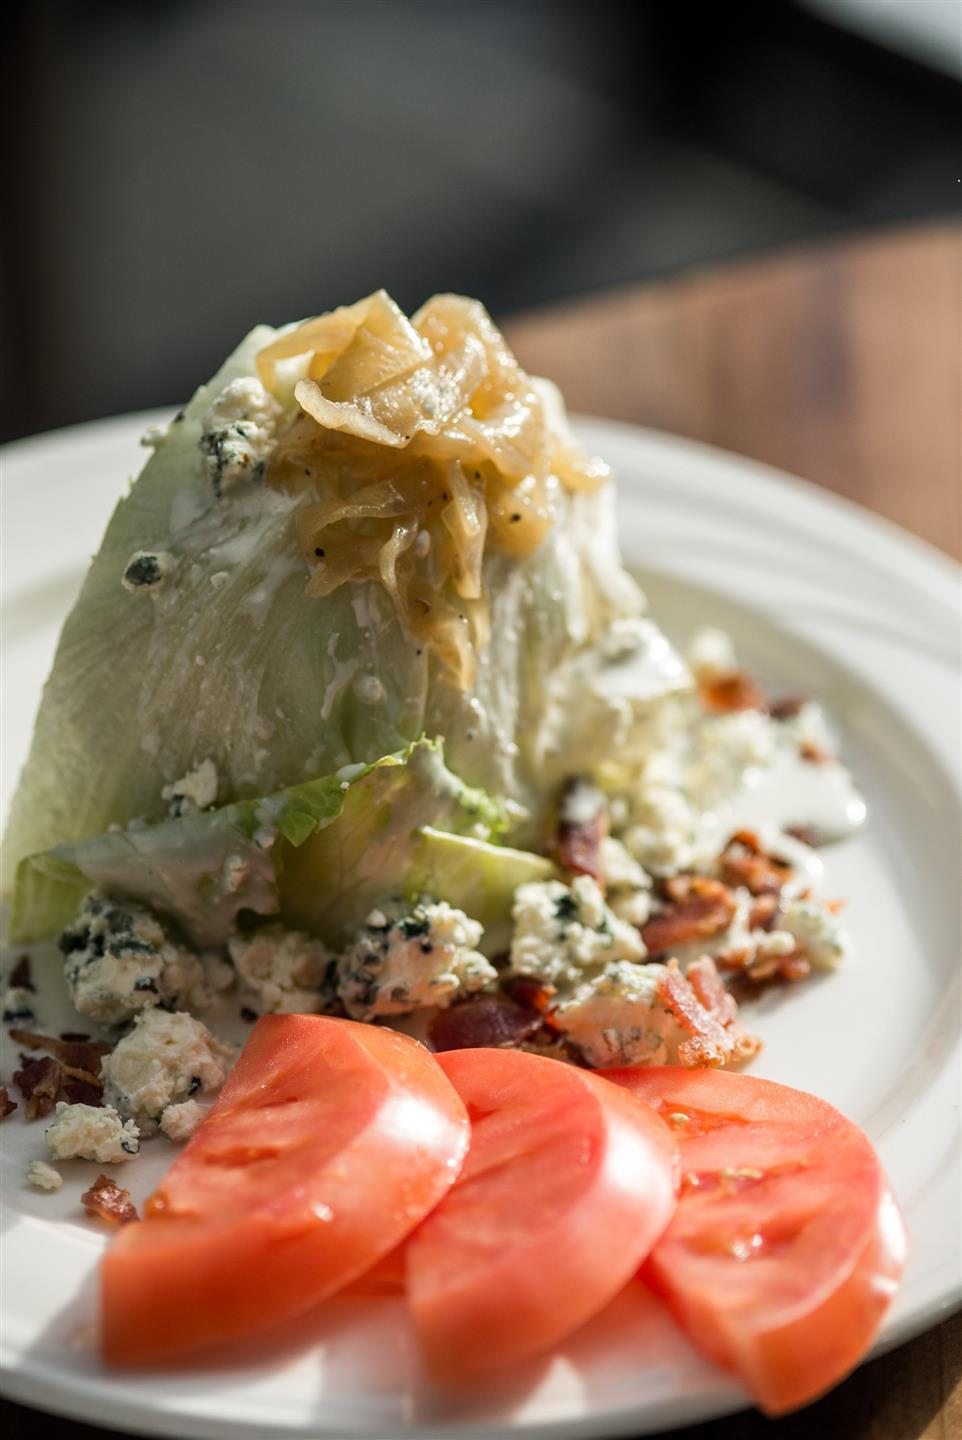 Classic Wedge Salad- Iceberg, Bailey Hazen Blue Cheese, Caramelized Onions, Bacon, Tomatoes, Blue Cheese Dressing on a white plate